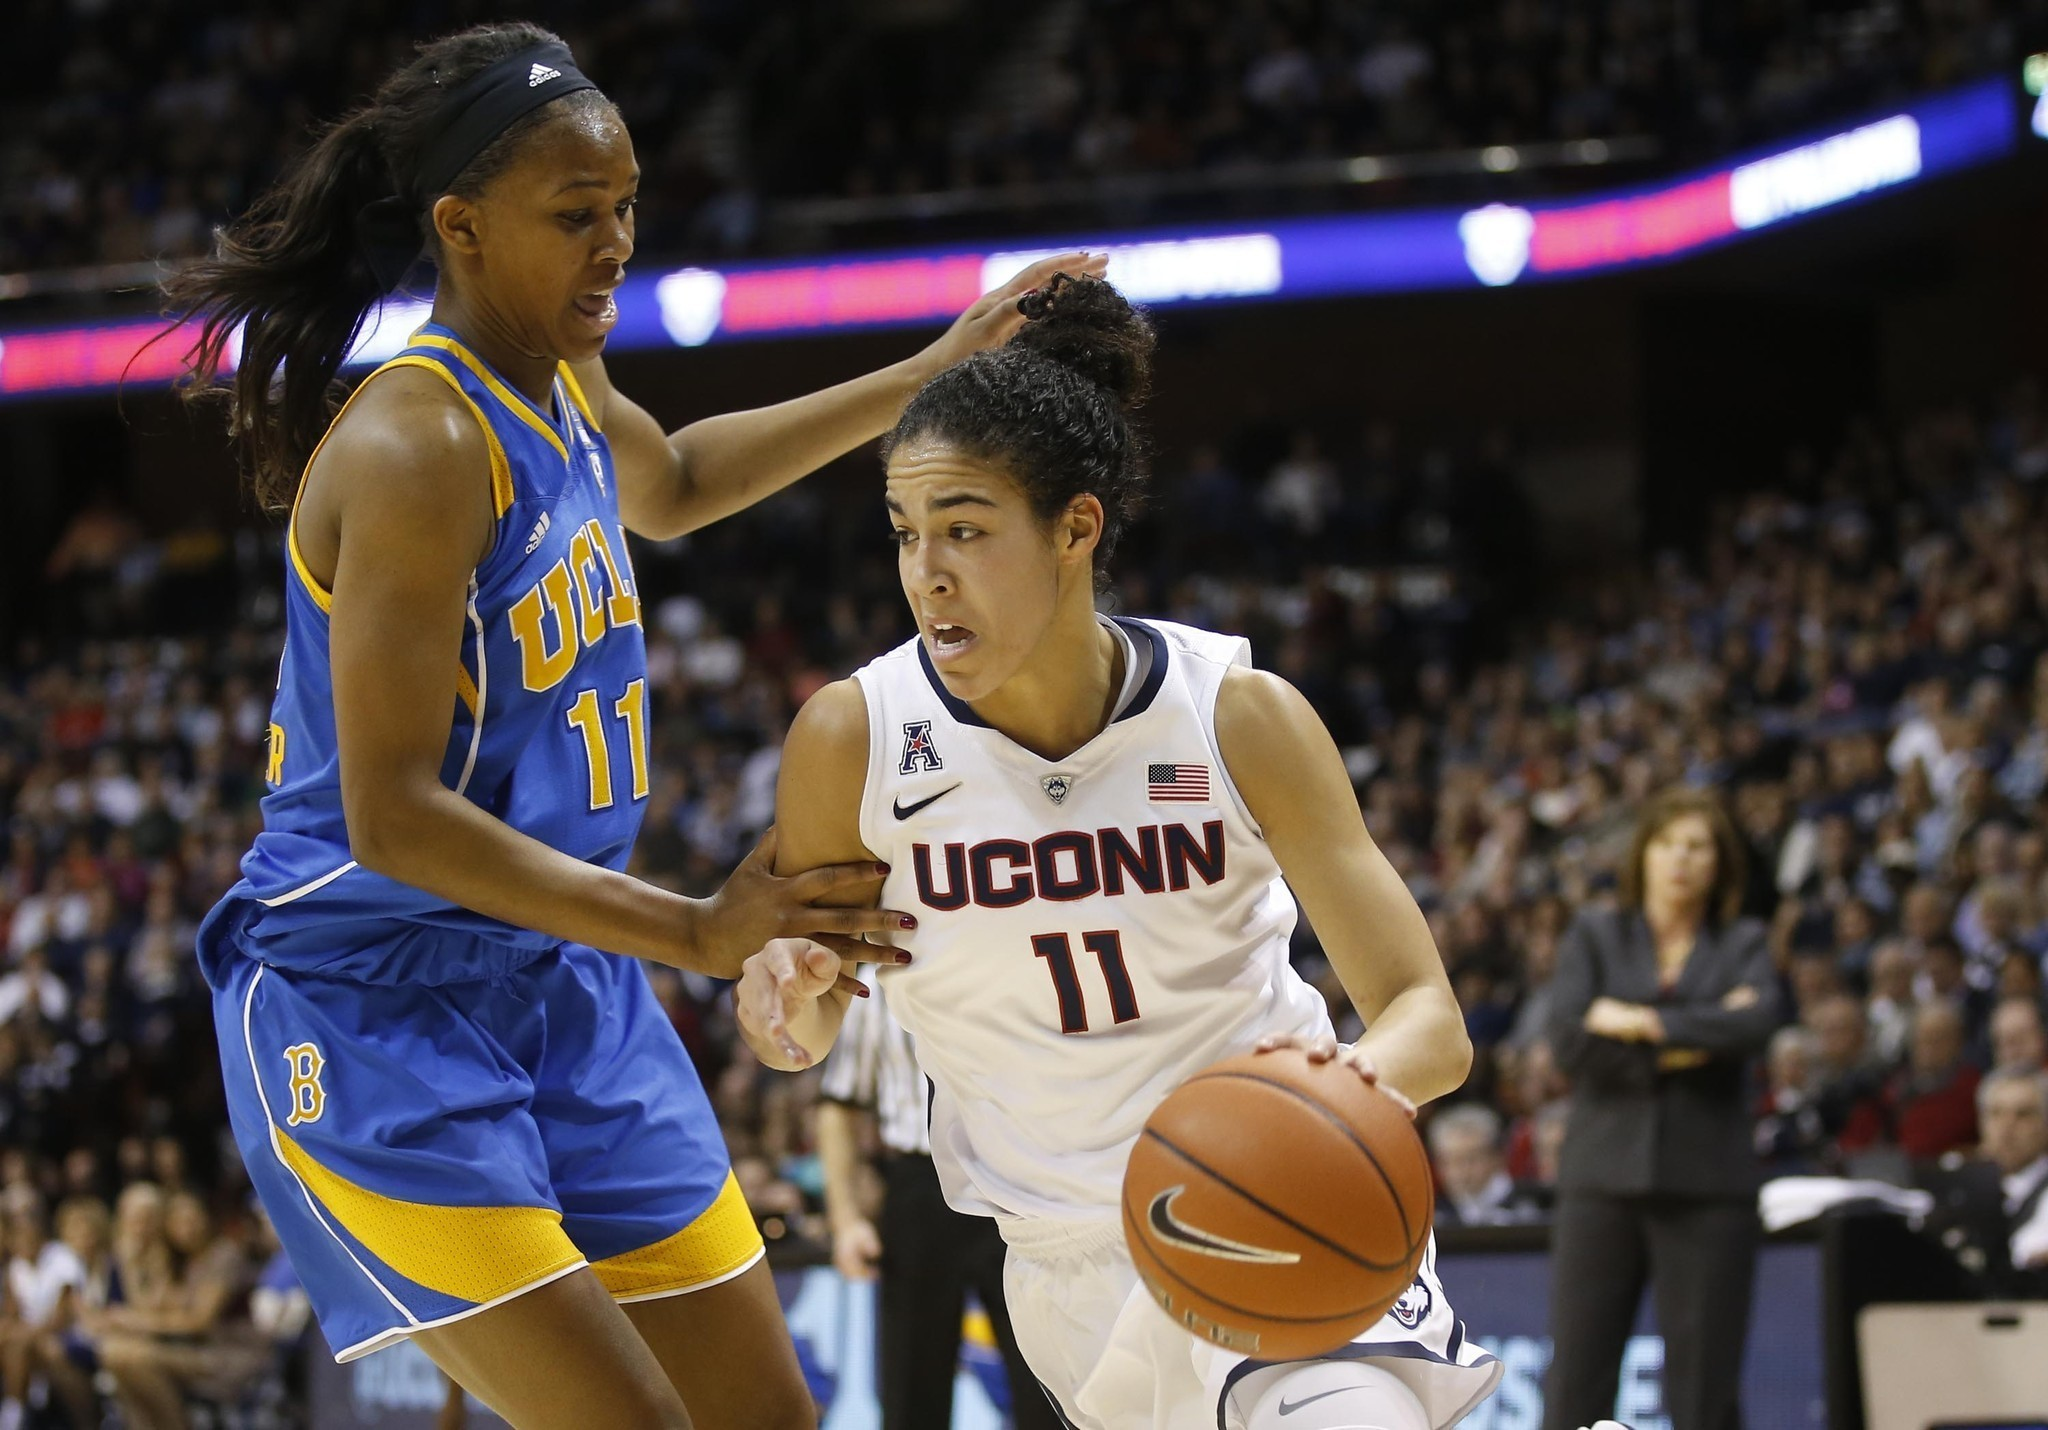 Uconn Womens Basketball Schedule 2017 2018 | Basketball Scores